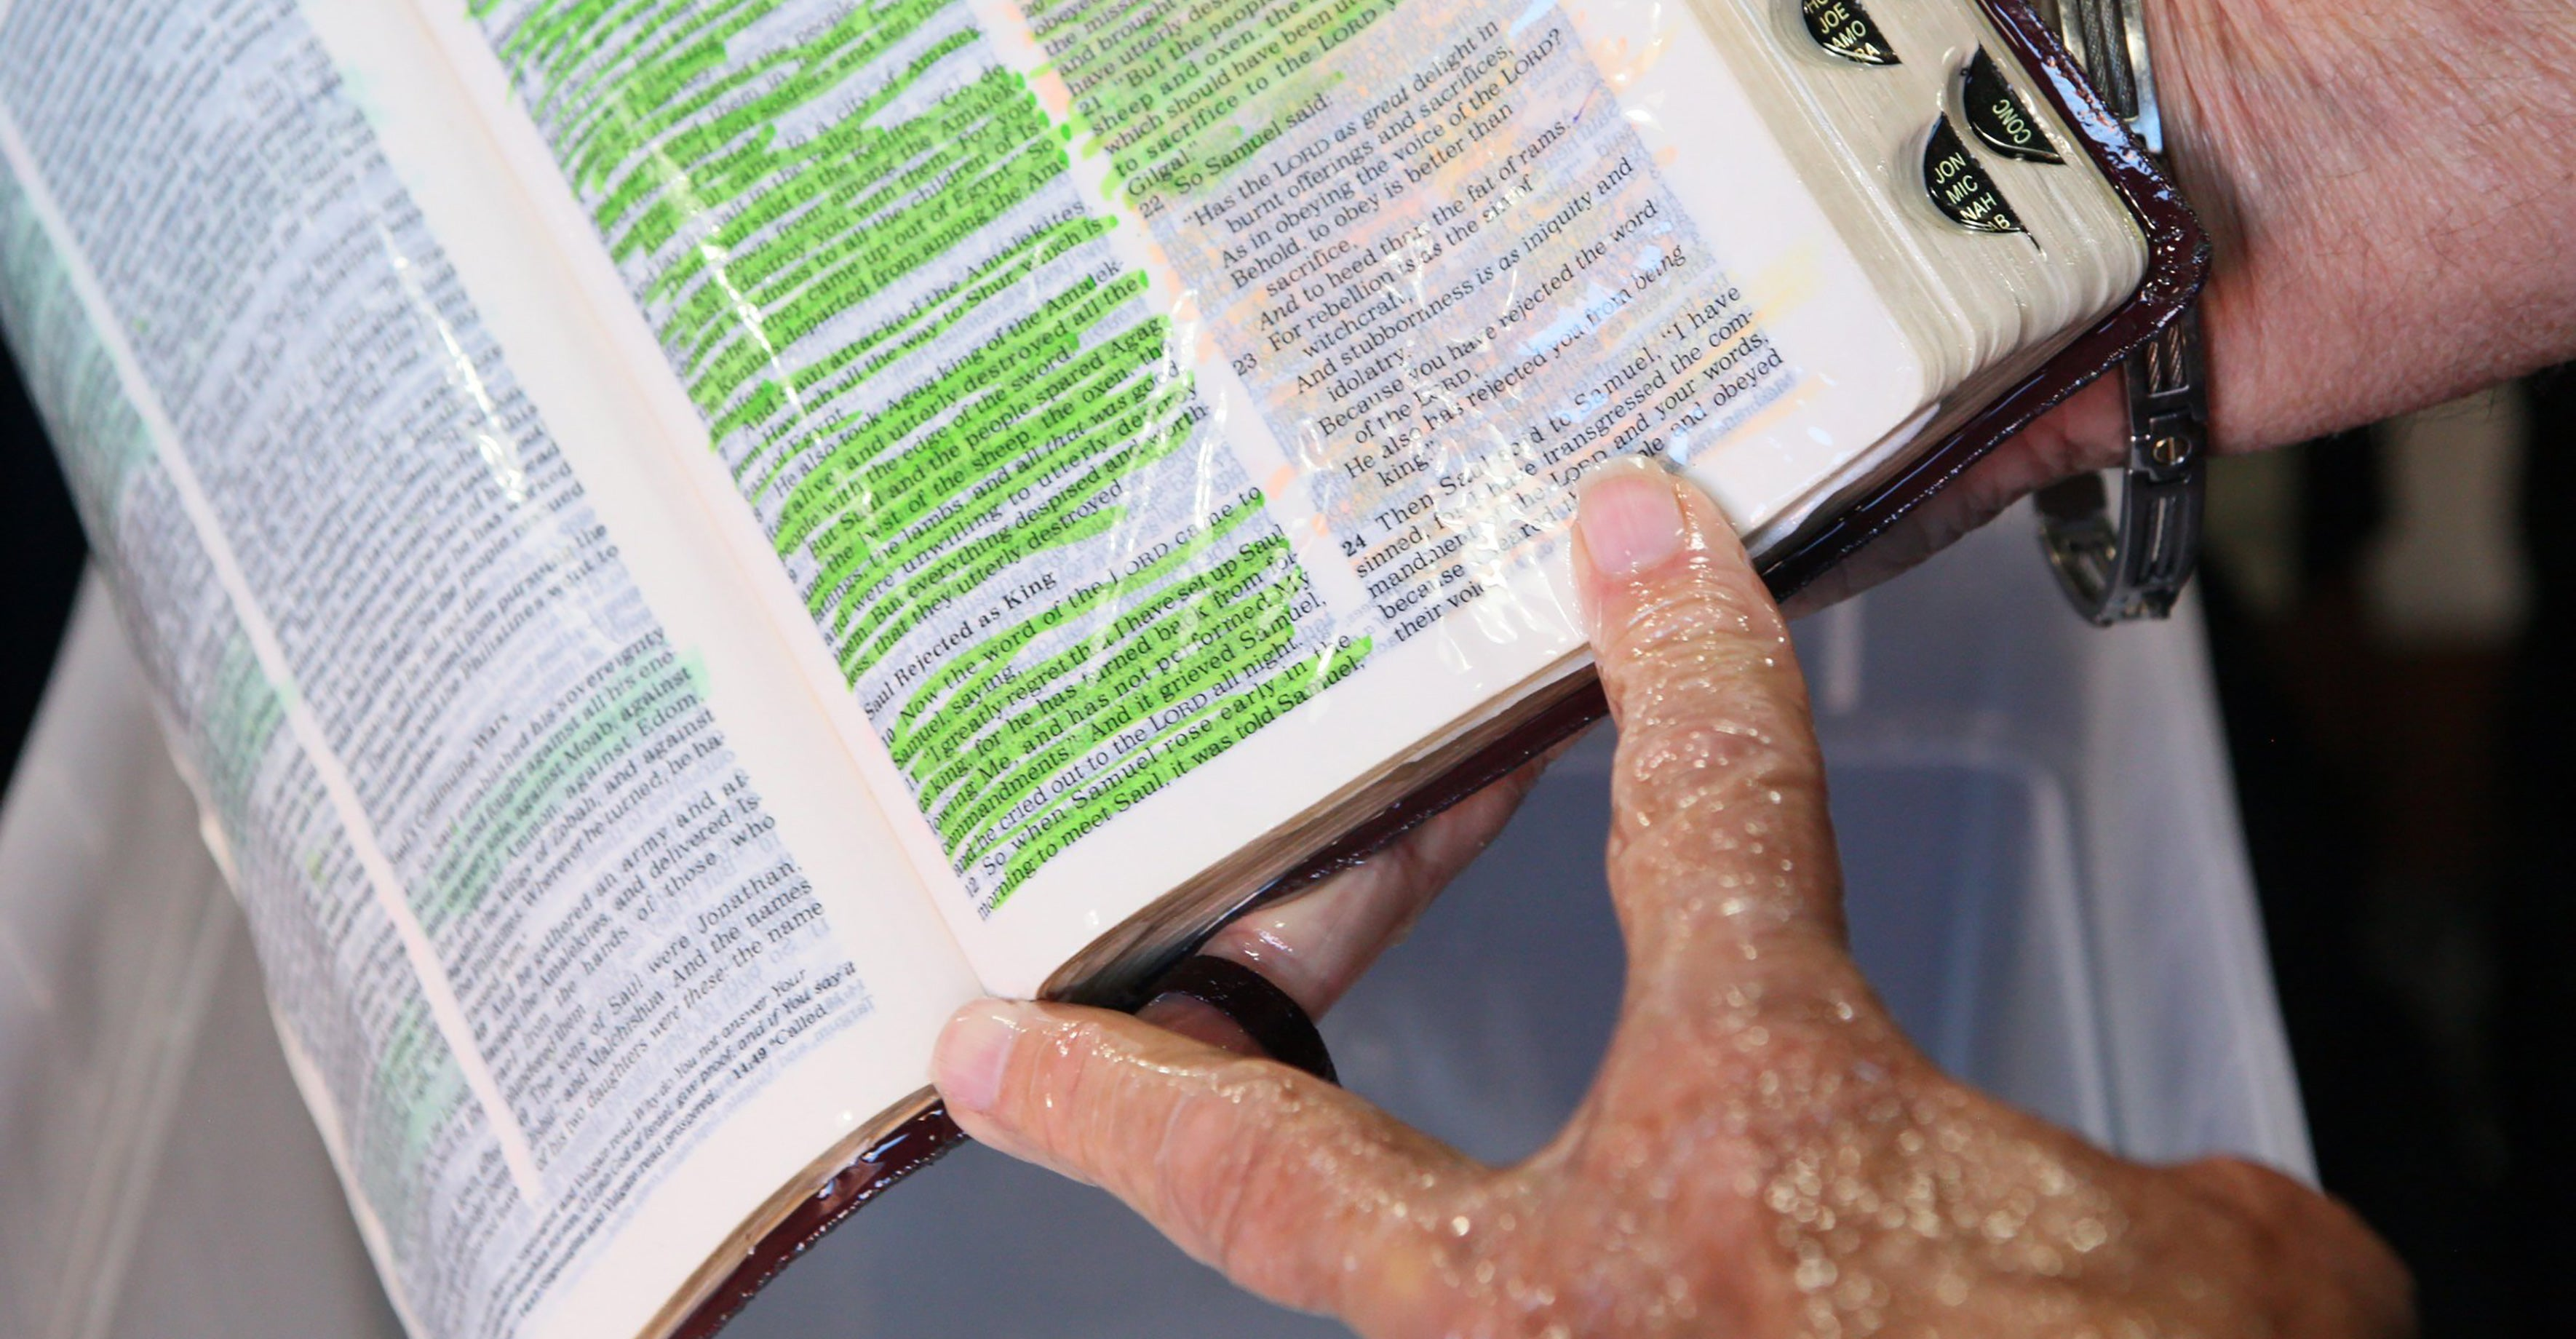 Hands wet with oil open a Bible, whose pages are slicked in oil.